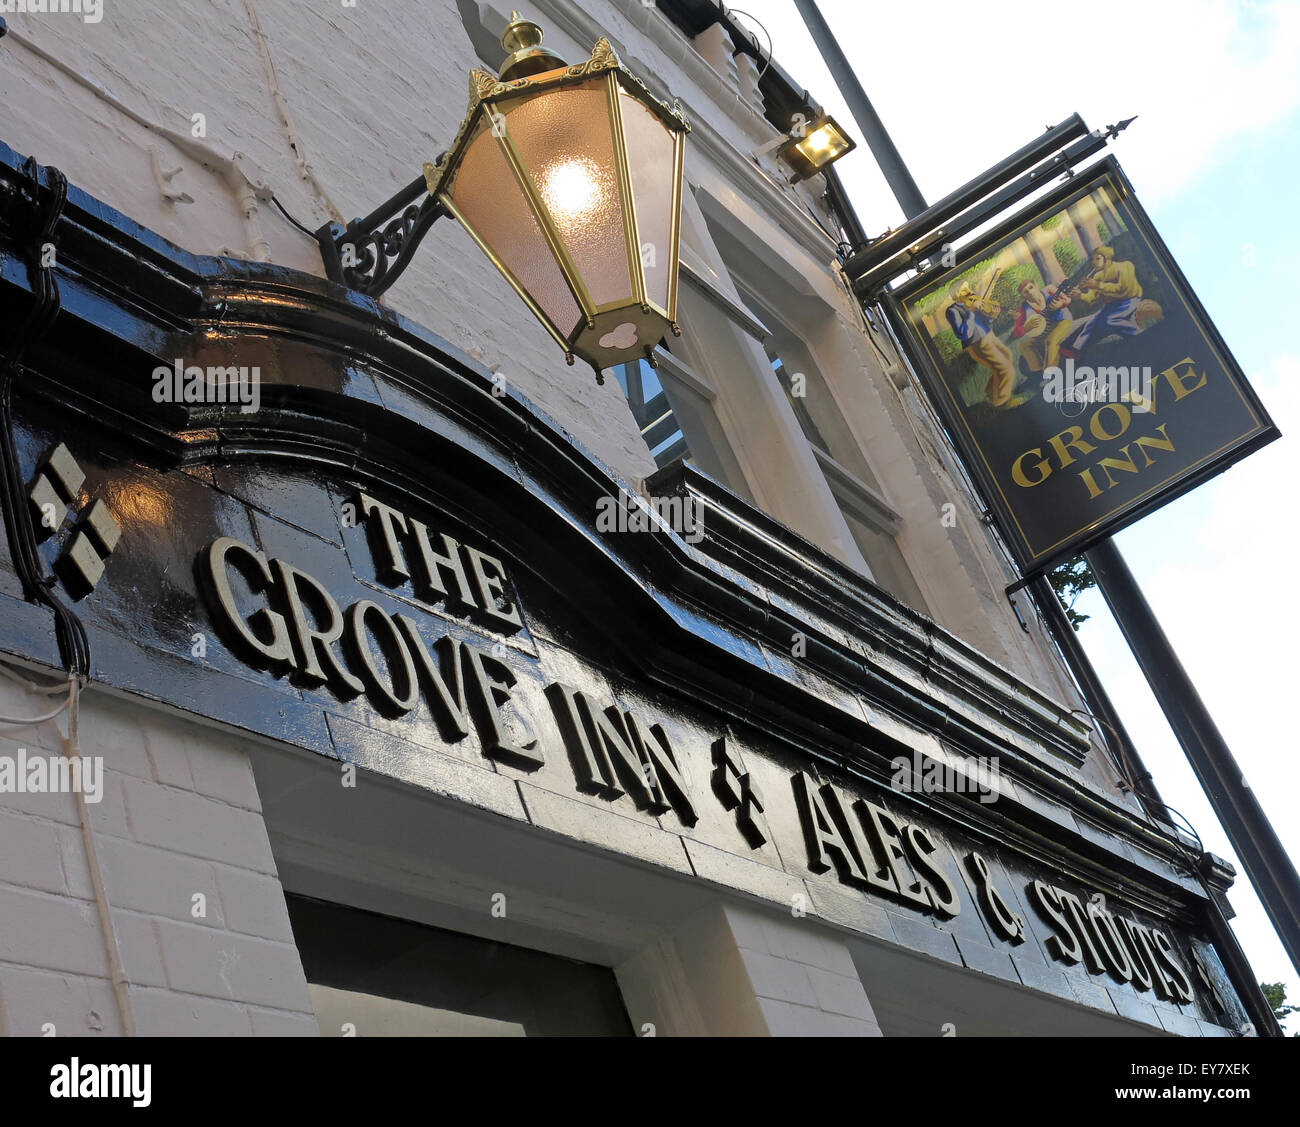 Grove Inn Pub, Back Row, Leeds, West Yorkshire,England,UK - Looking up - Stock Image